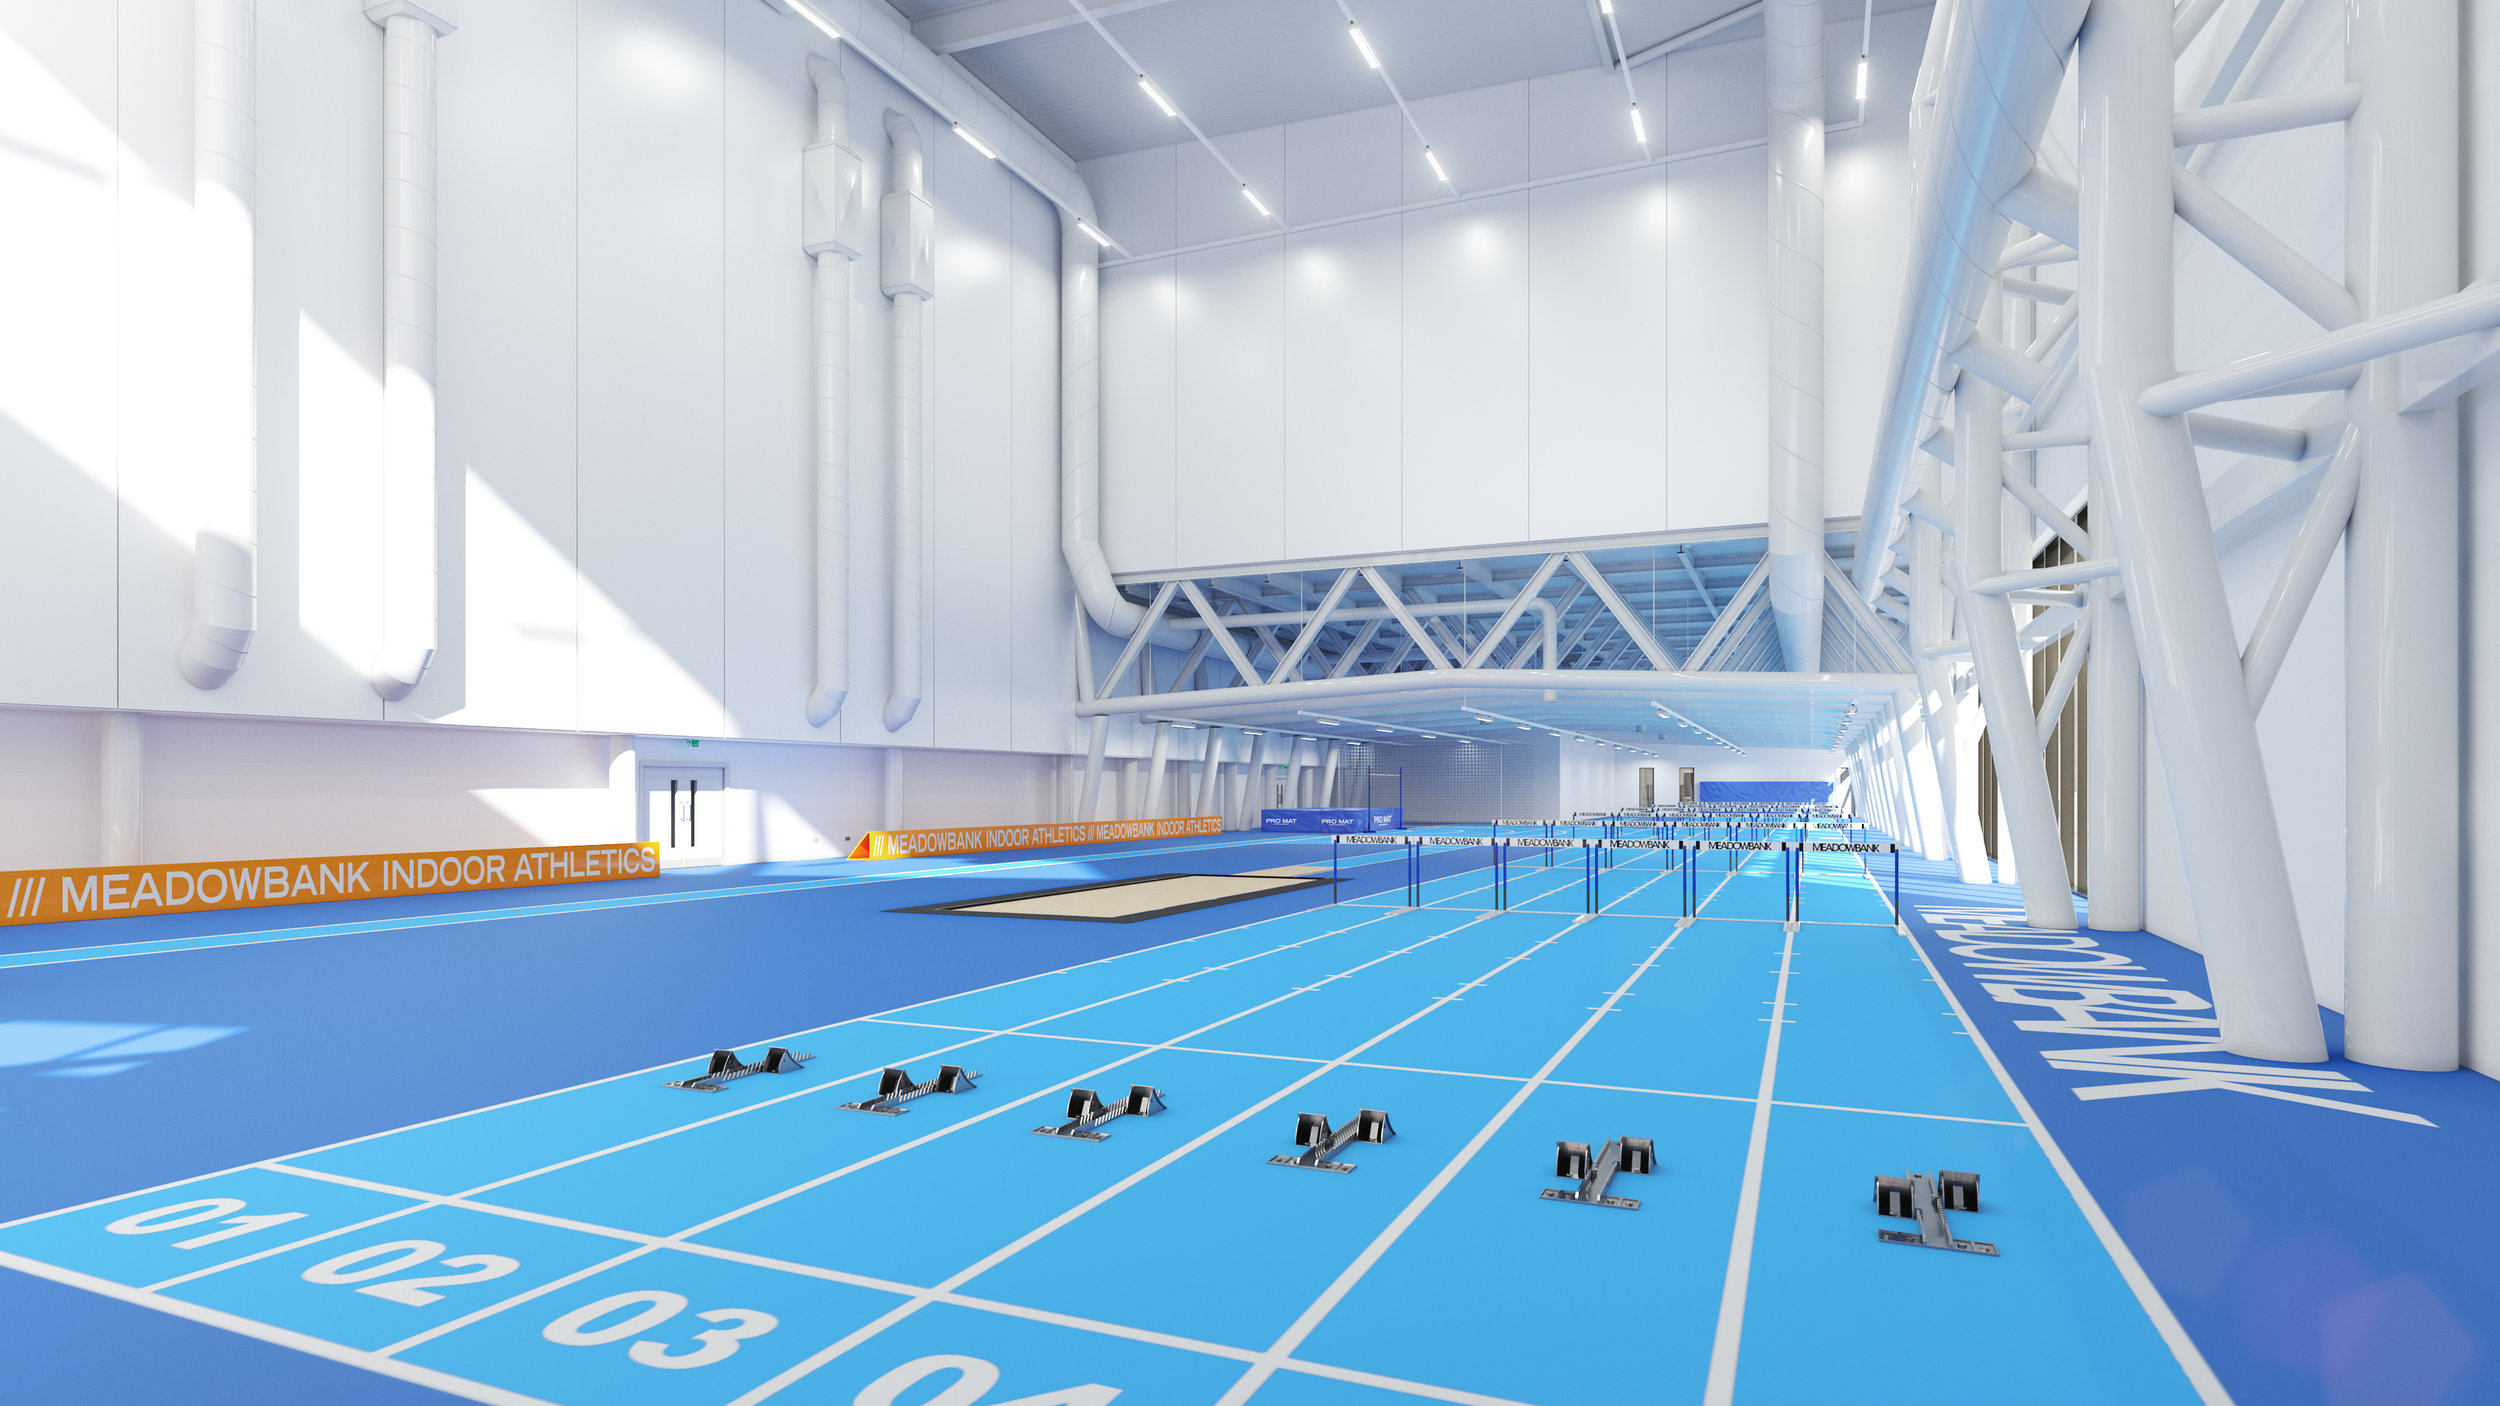 18_0015_VL_Meadowbank_IndoorTrack_13thDec2018.jpg